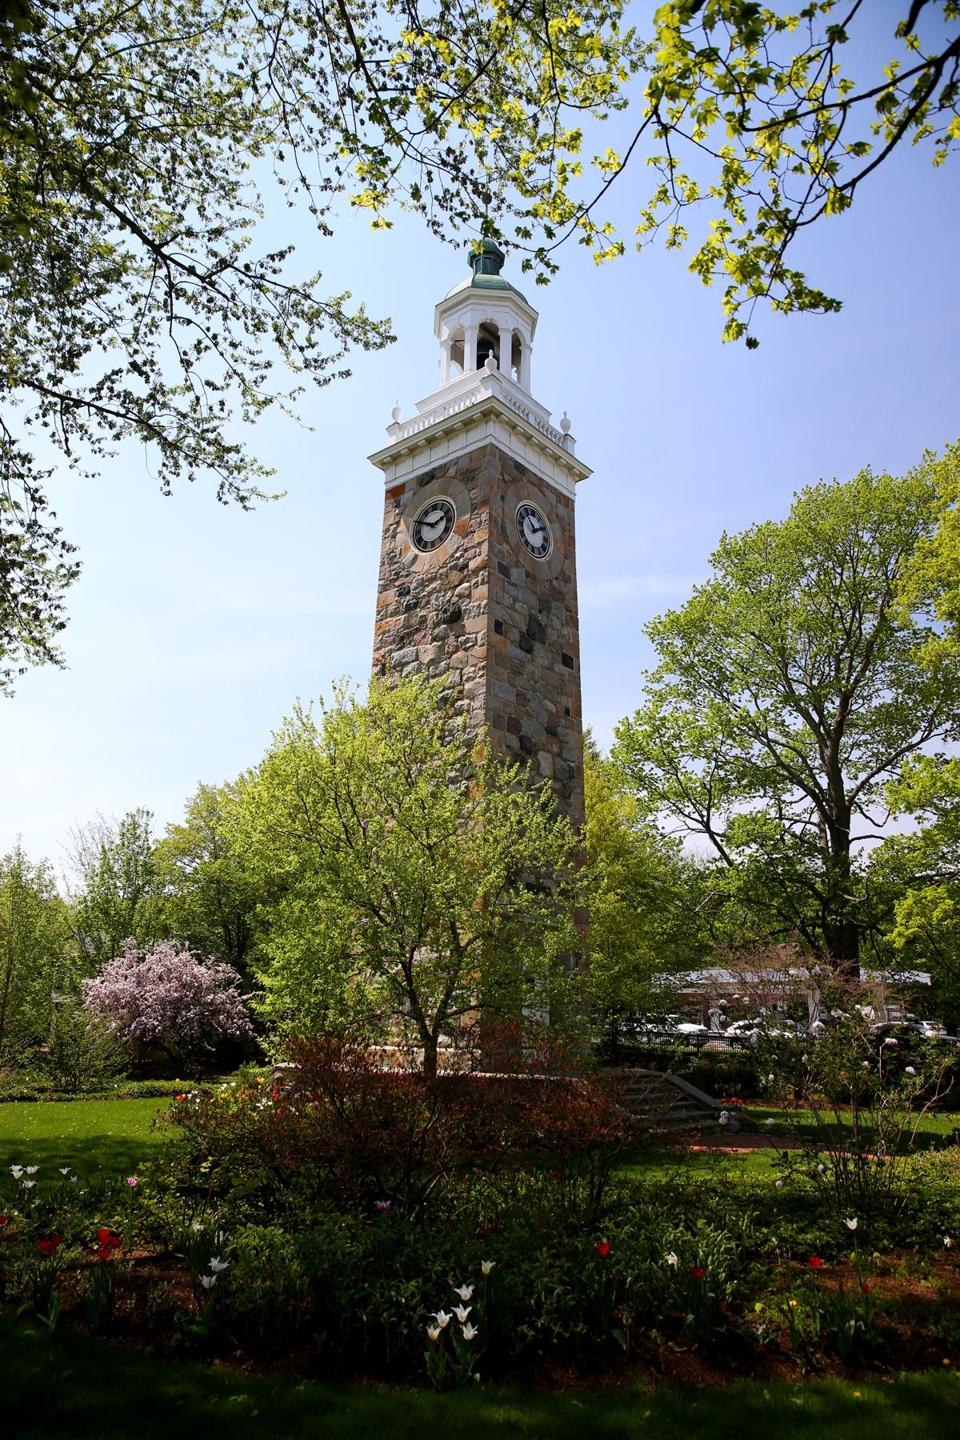 Wellesley Ma 05/09/2015 The town of Wellesley Sprague Memorial Clock Tower. .Staff/Photographer Jonathan Wiggs Topic: Reporter